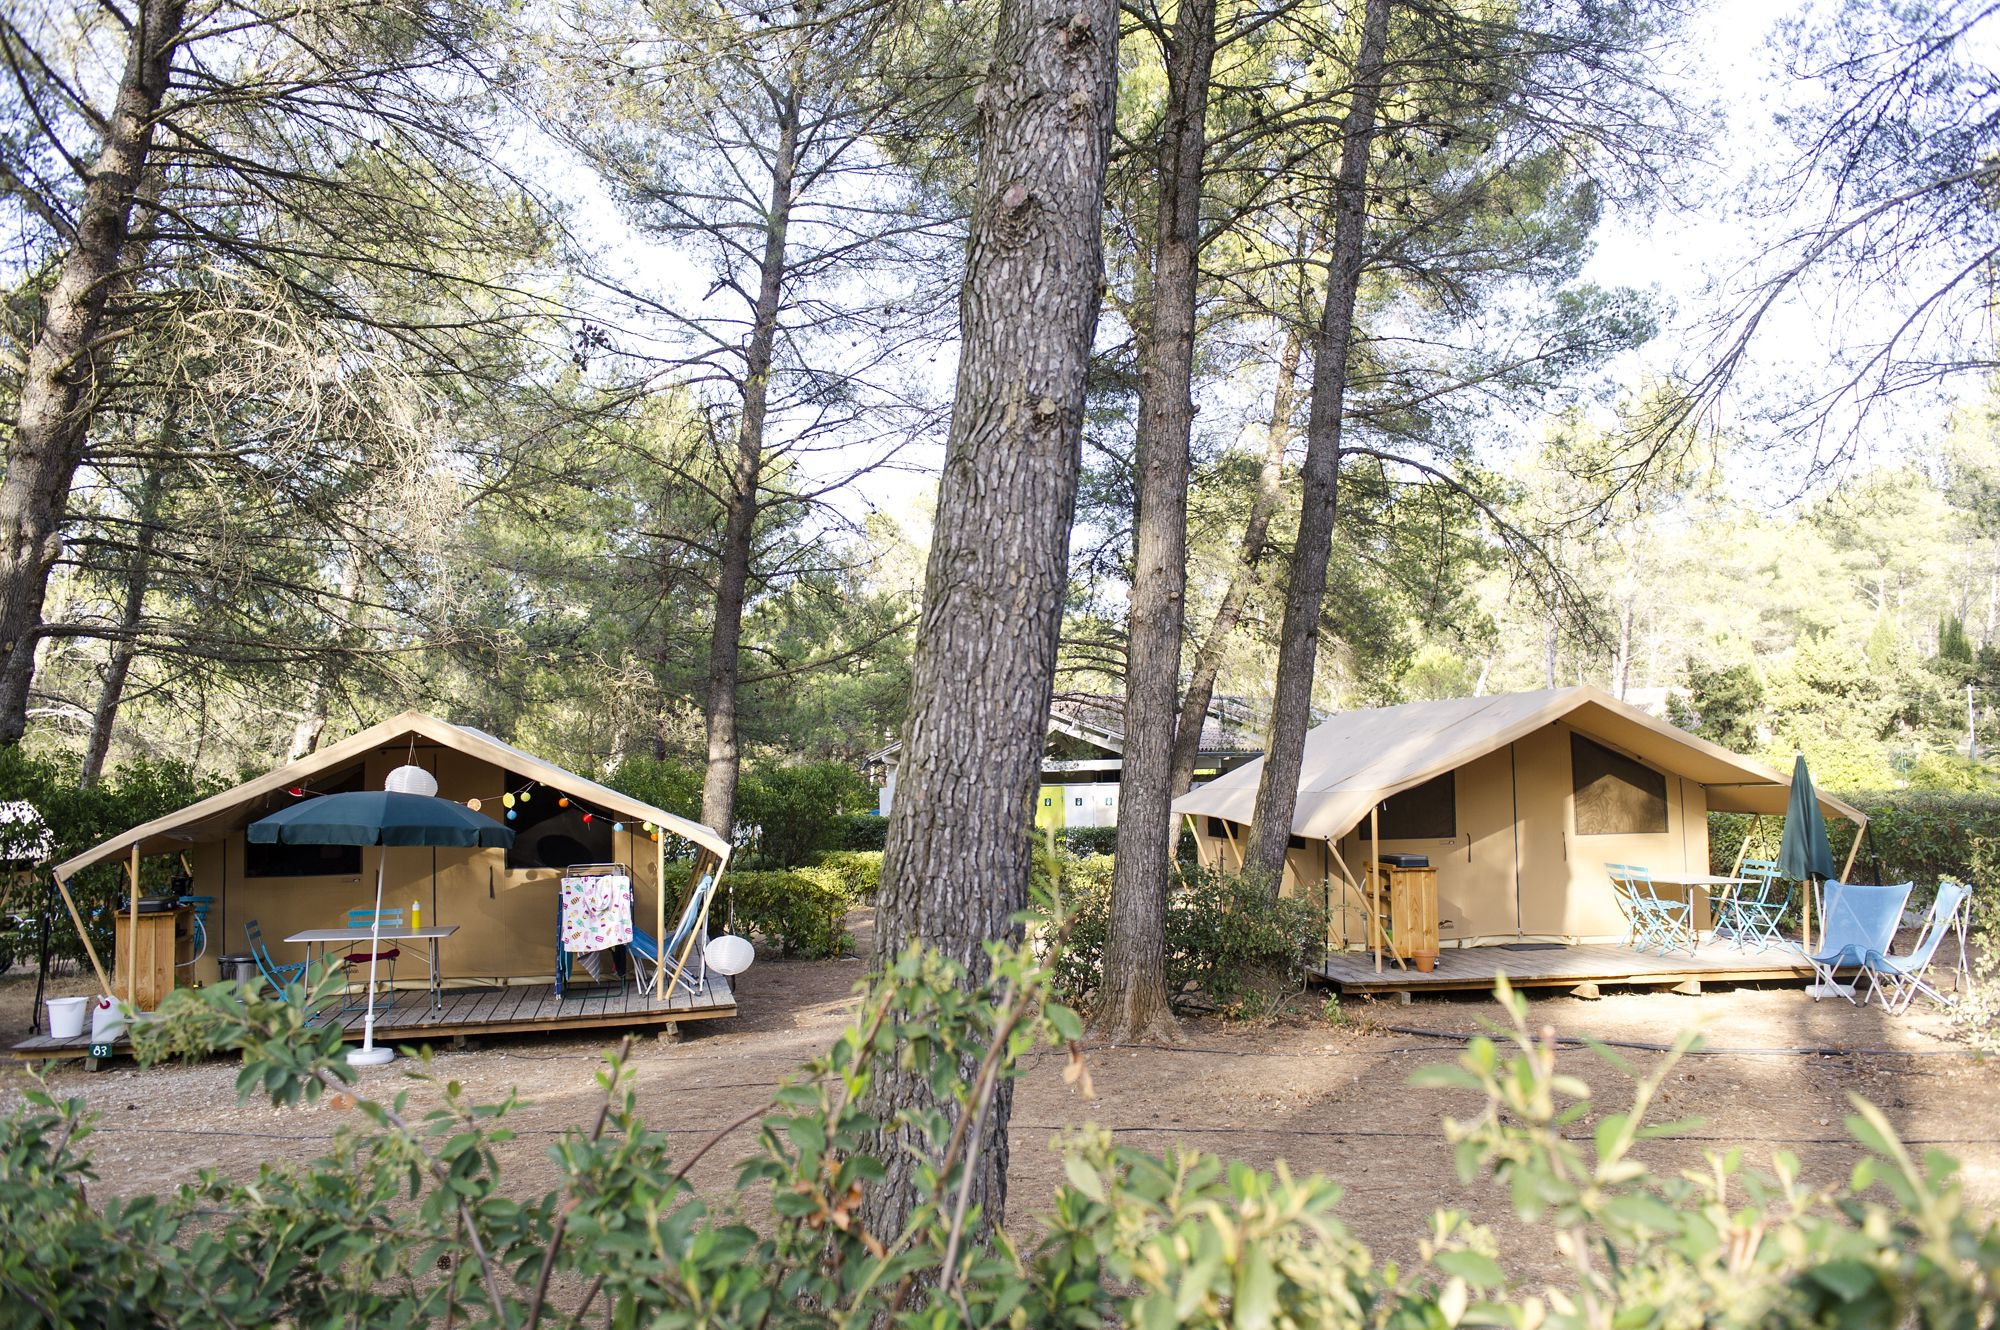 Family-friendly camping in Provence in the foothills of the Alpilles Regional Park with a swimming pool, a café and the historic village of Fontvieille on the doorstep.